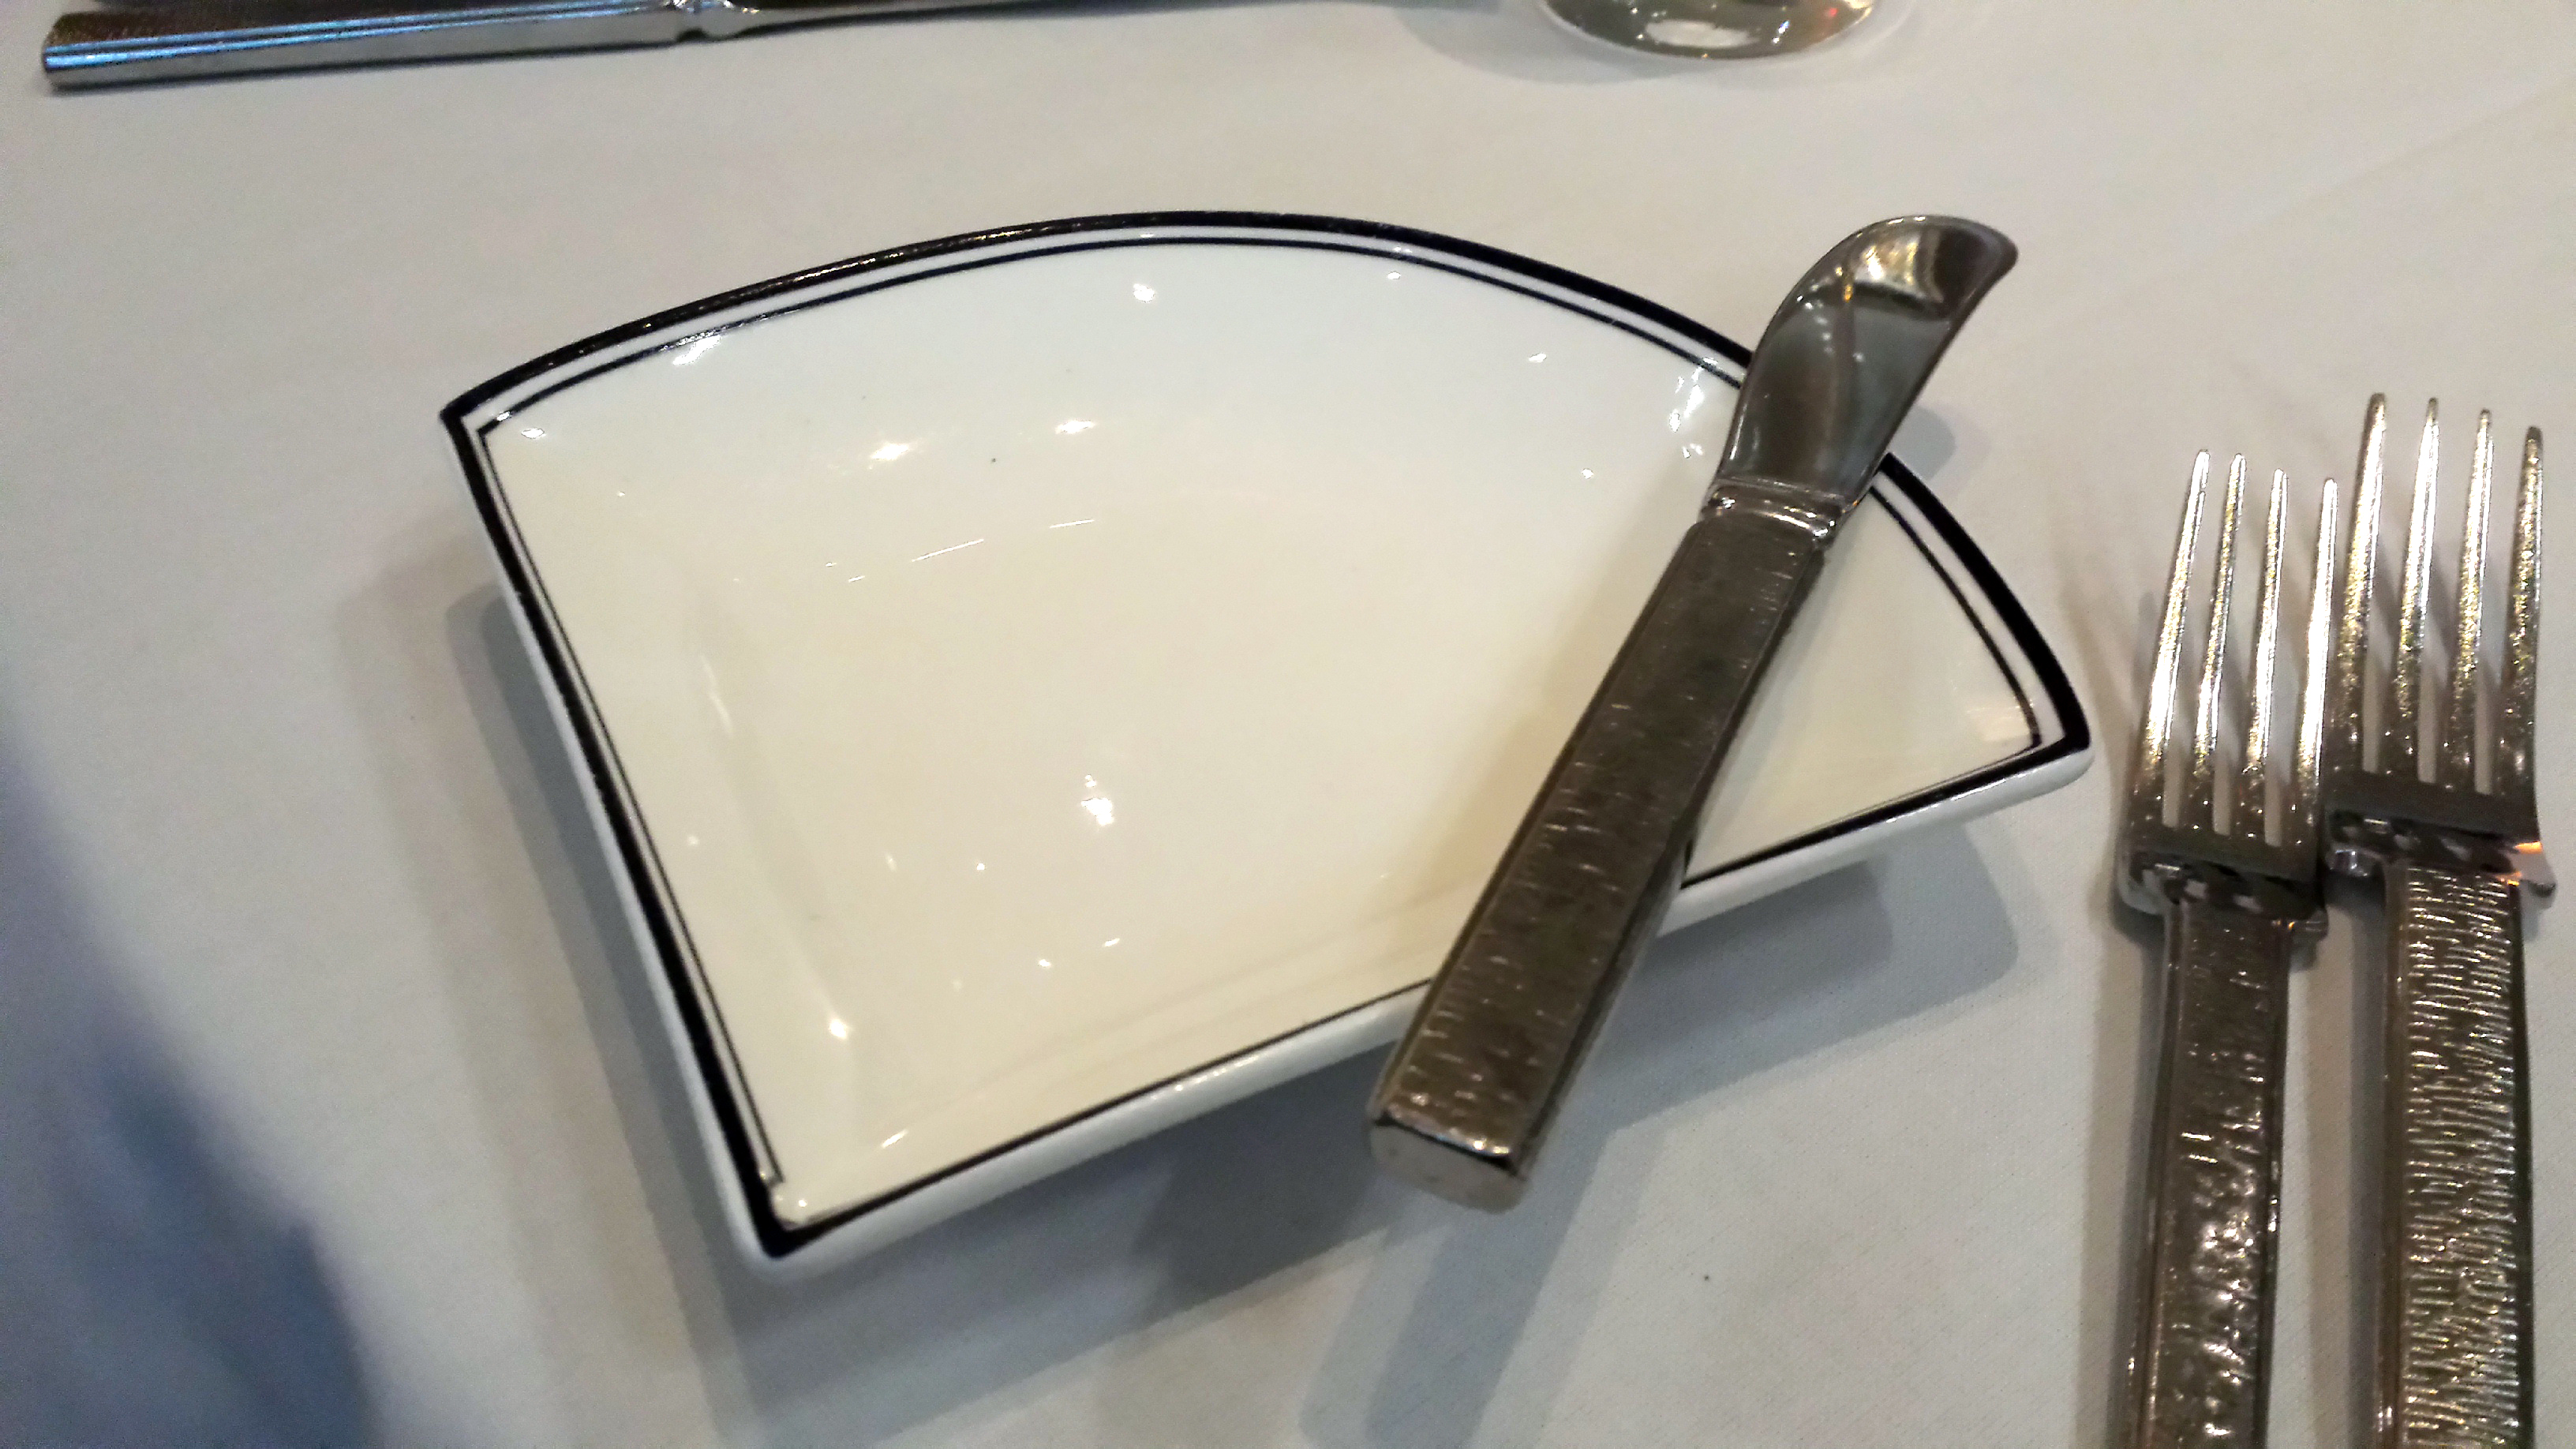 Marvelous Unique Shaped Dinner Plates Gallery - Best Image Engine ...